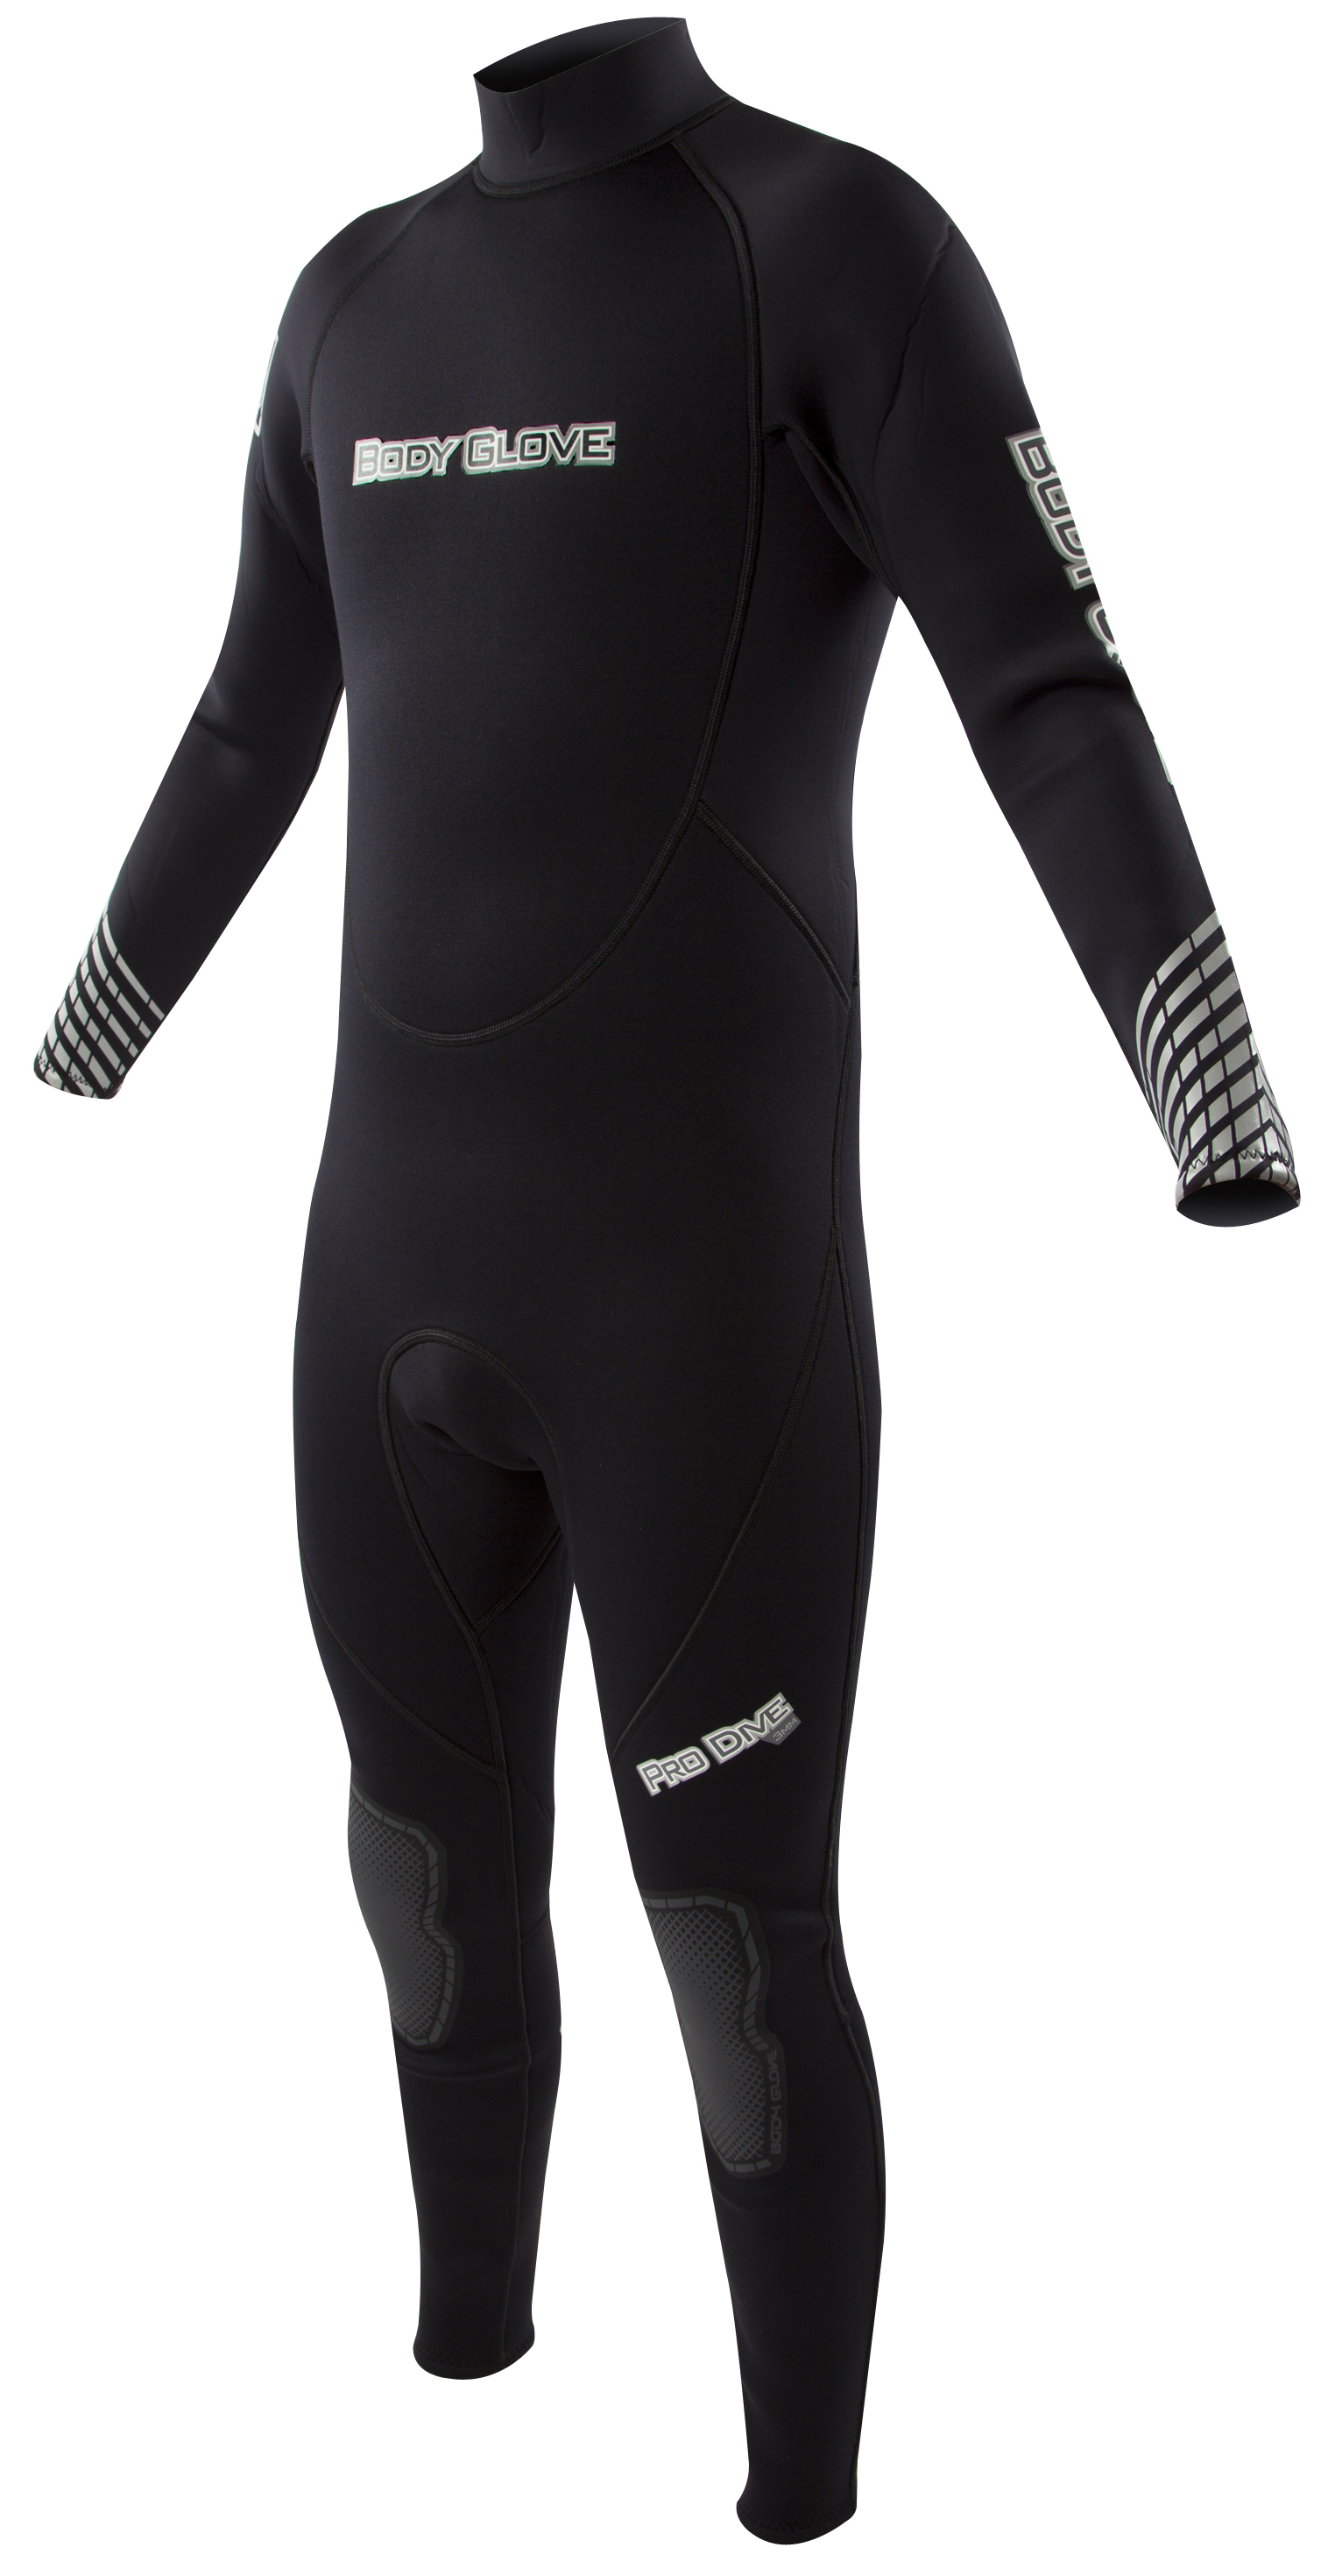 Body Glove Pro 3 Dive 3mm Men's Backzip Fullsuit - Black